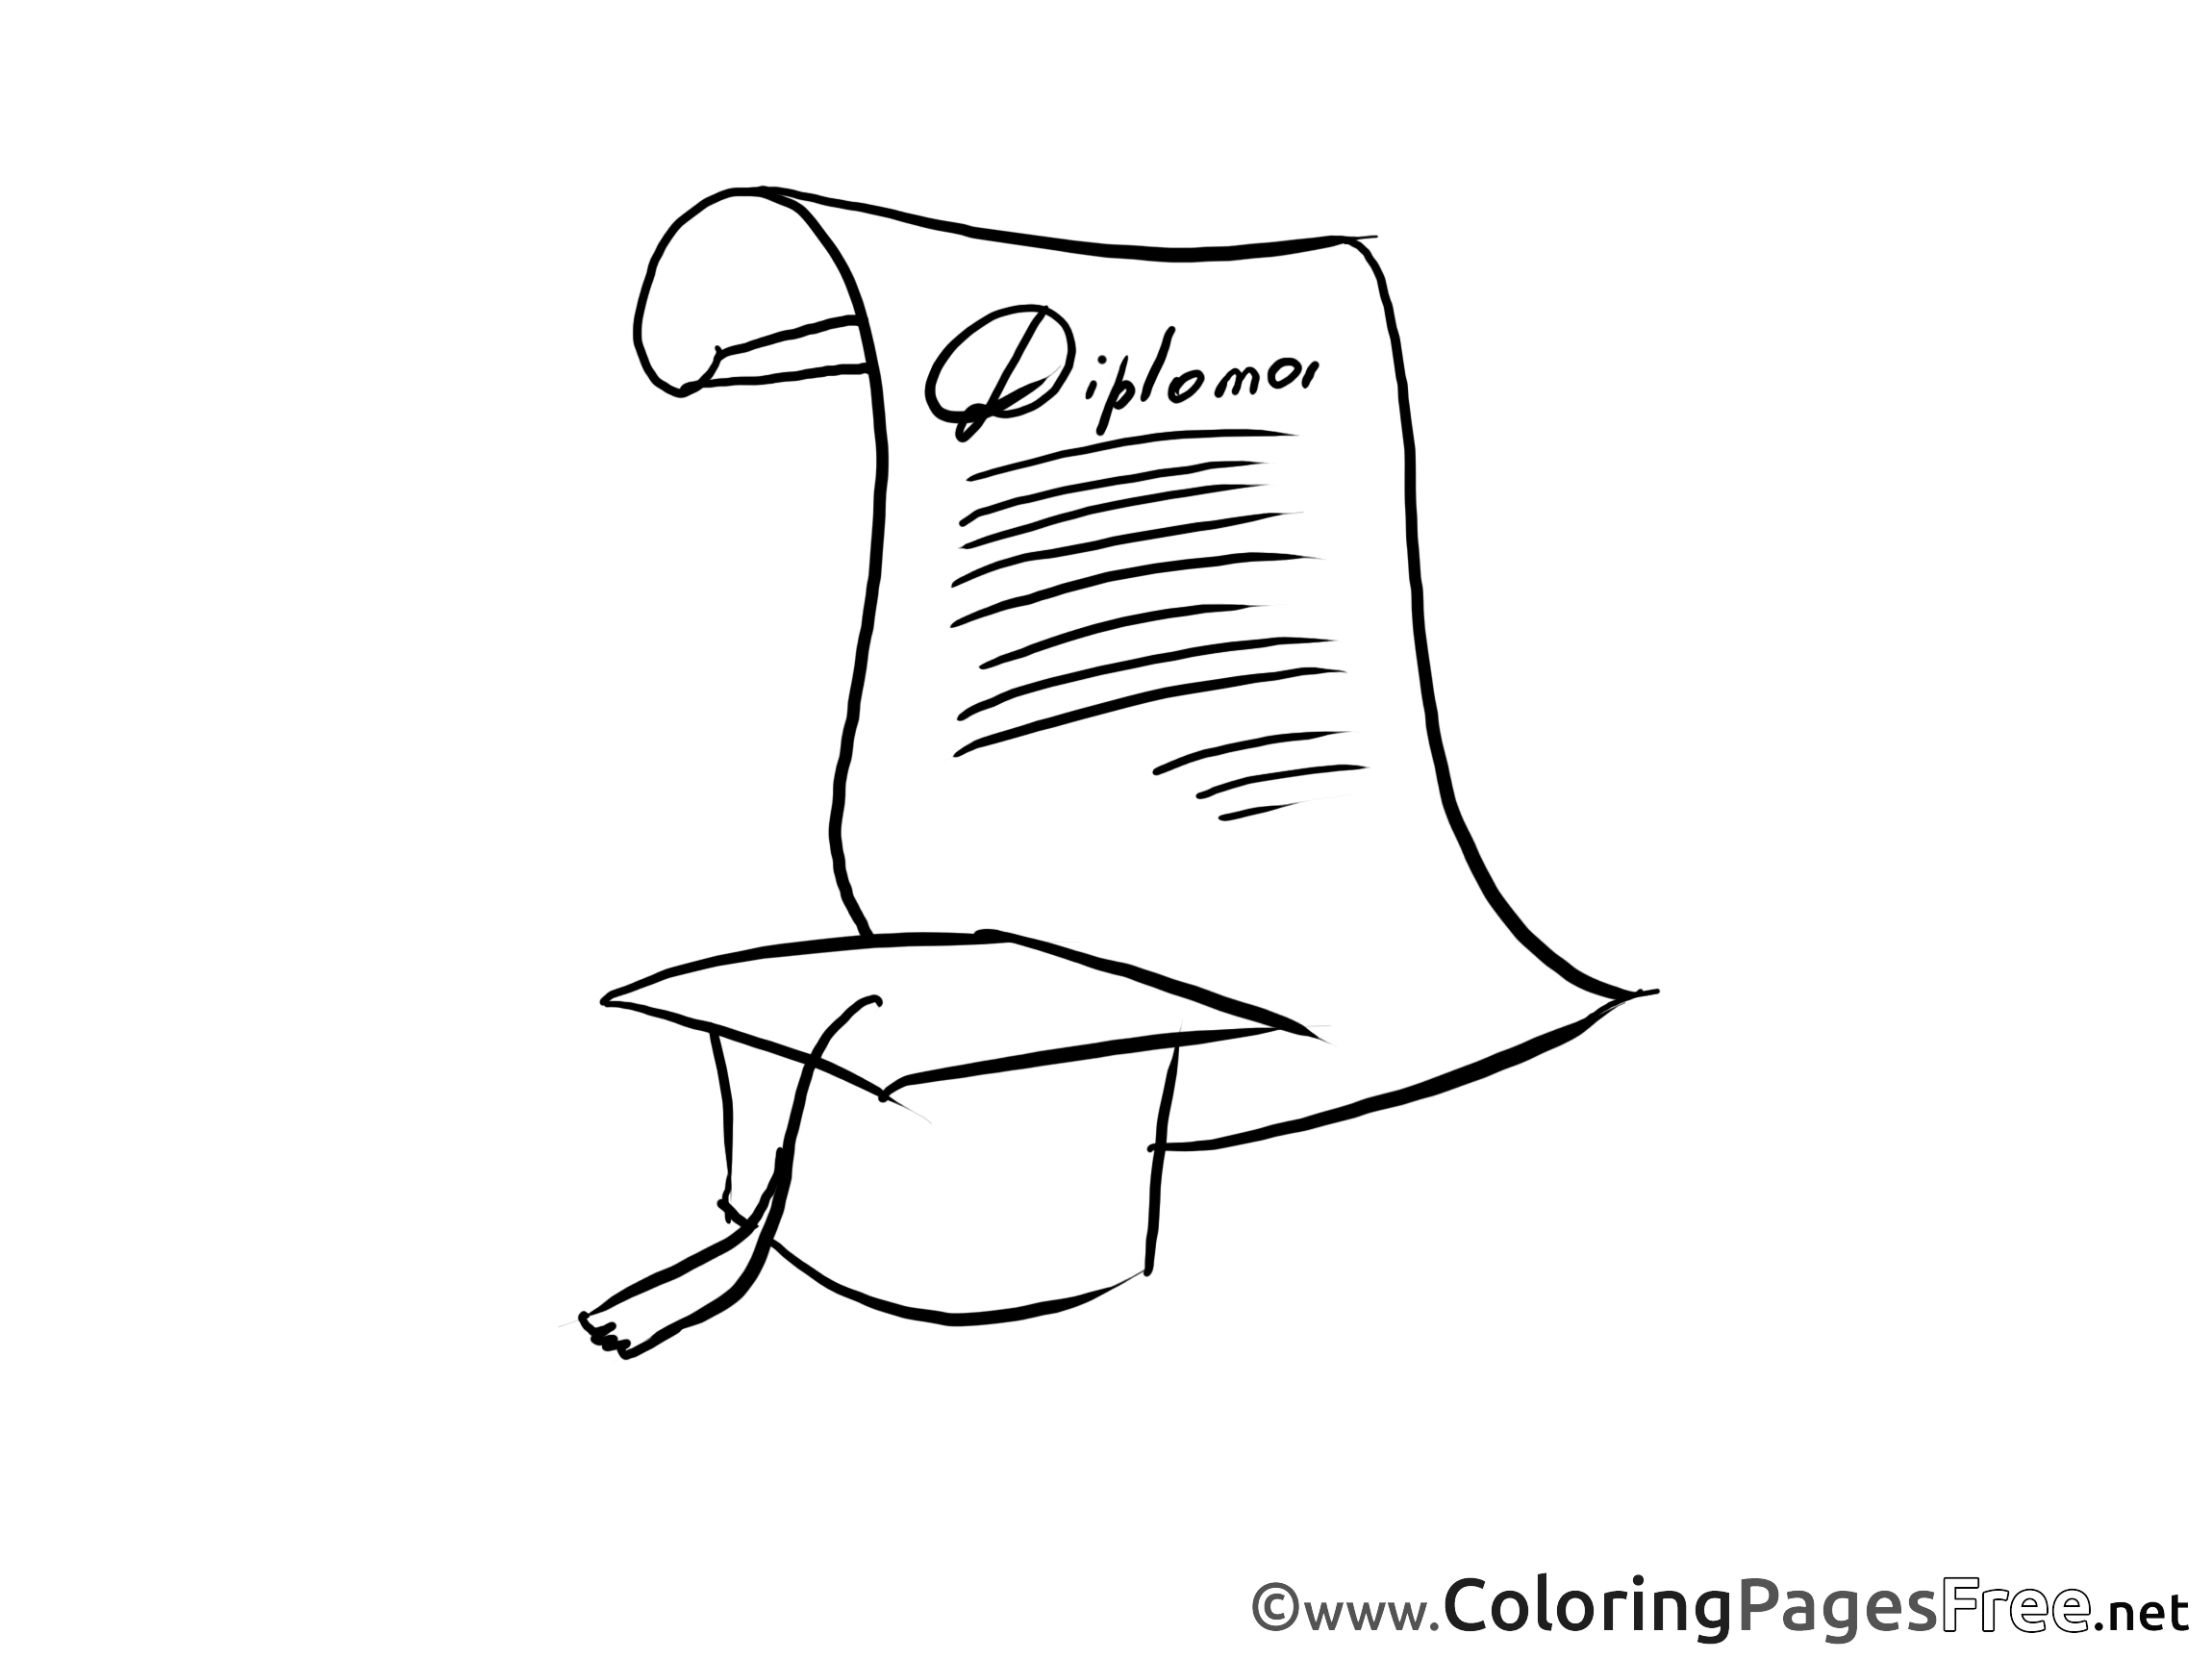 diploma coloring pages